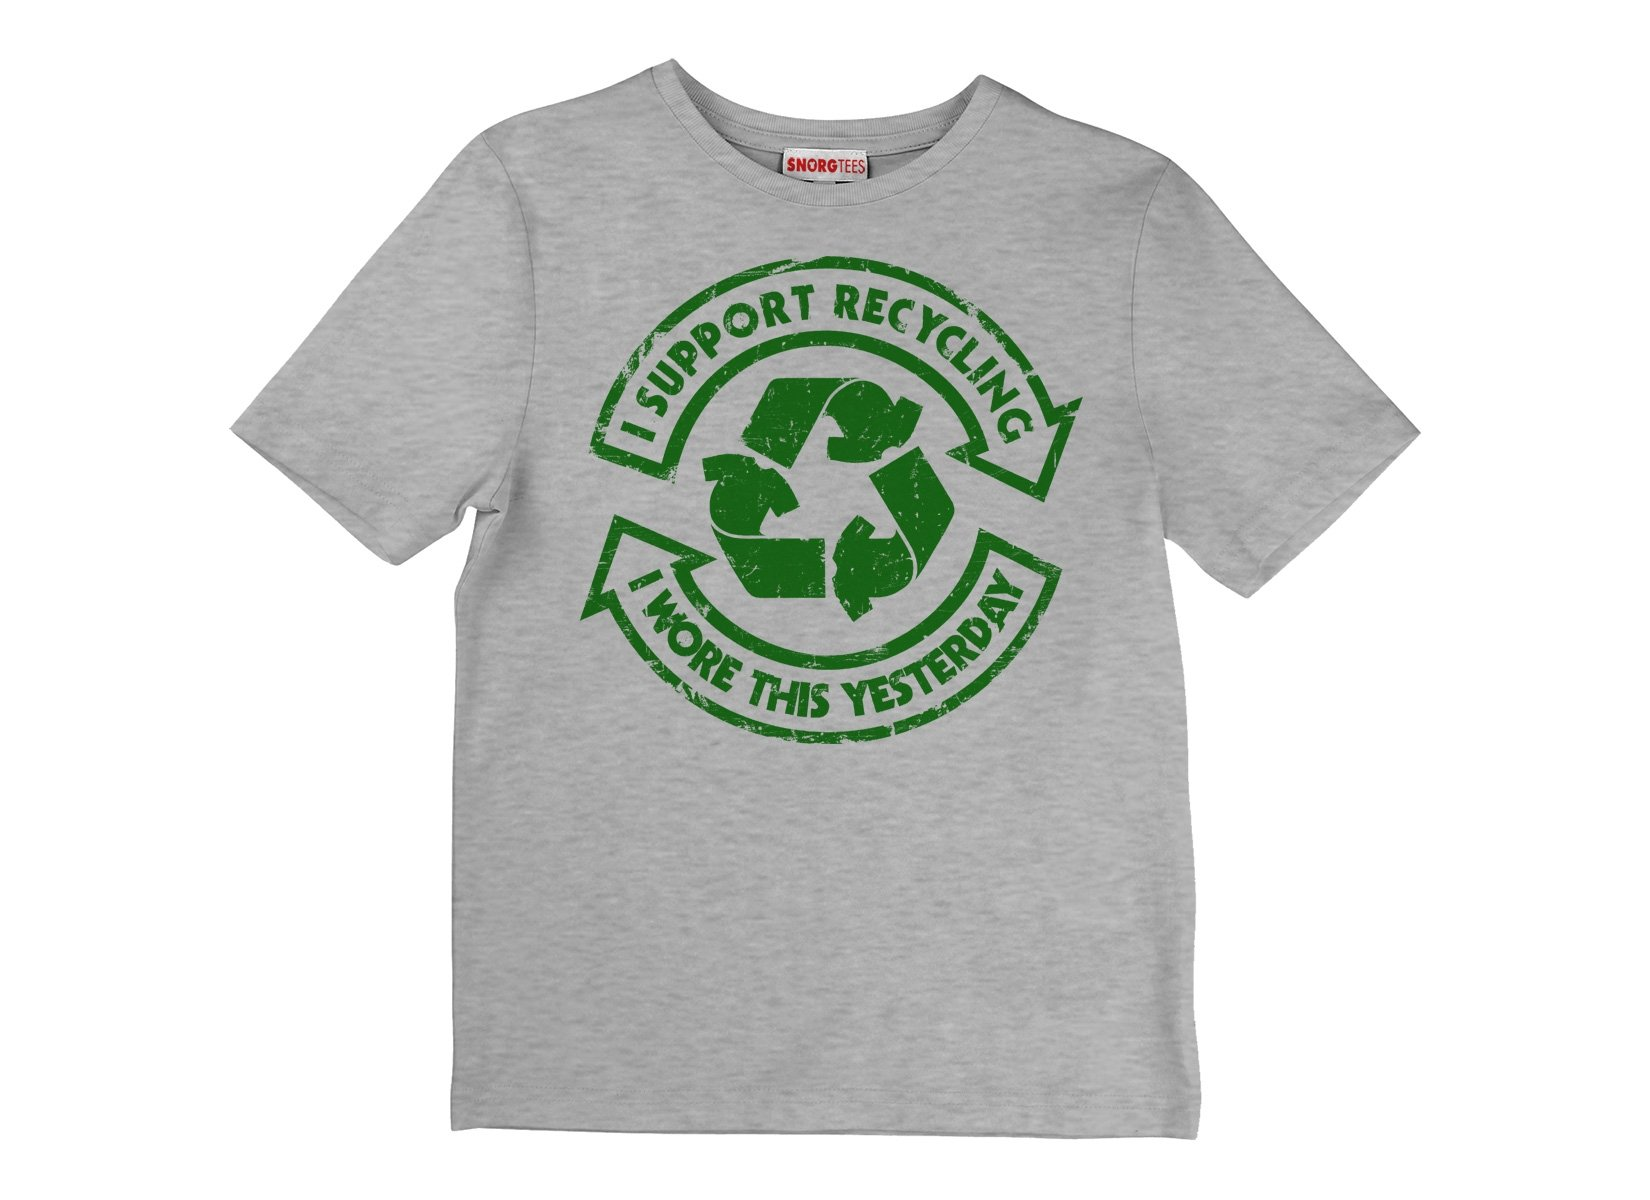 I Support Recycling on Kids T-Shirt